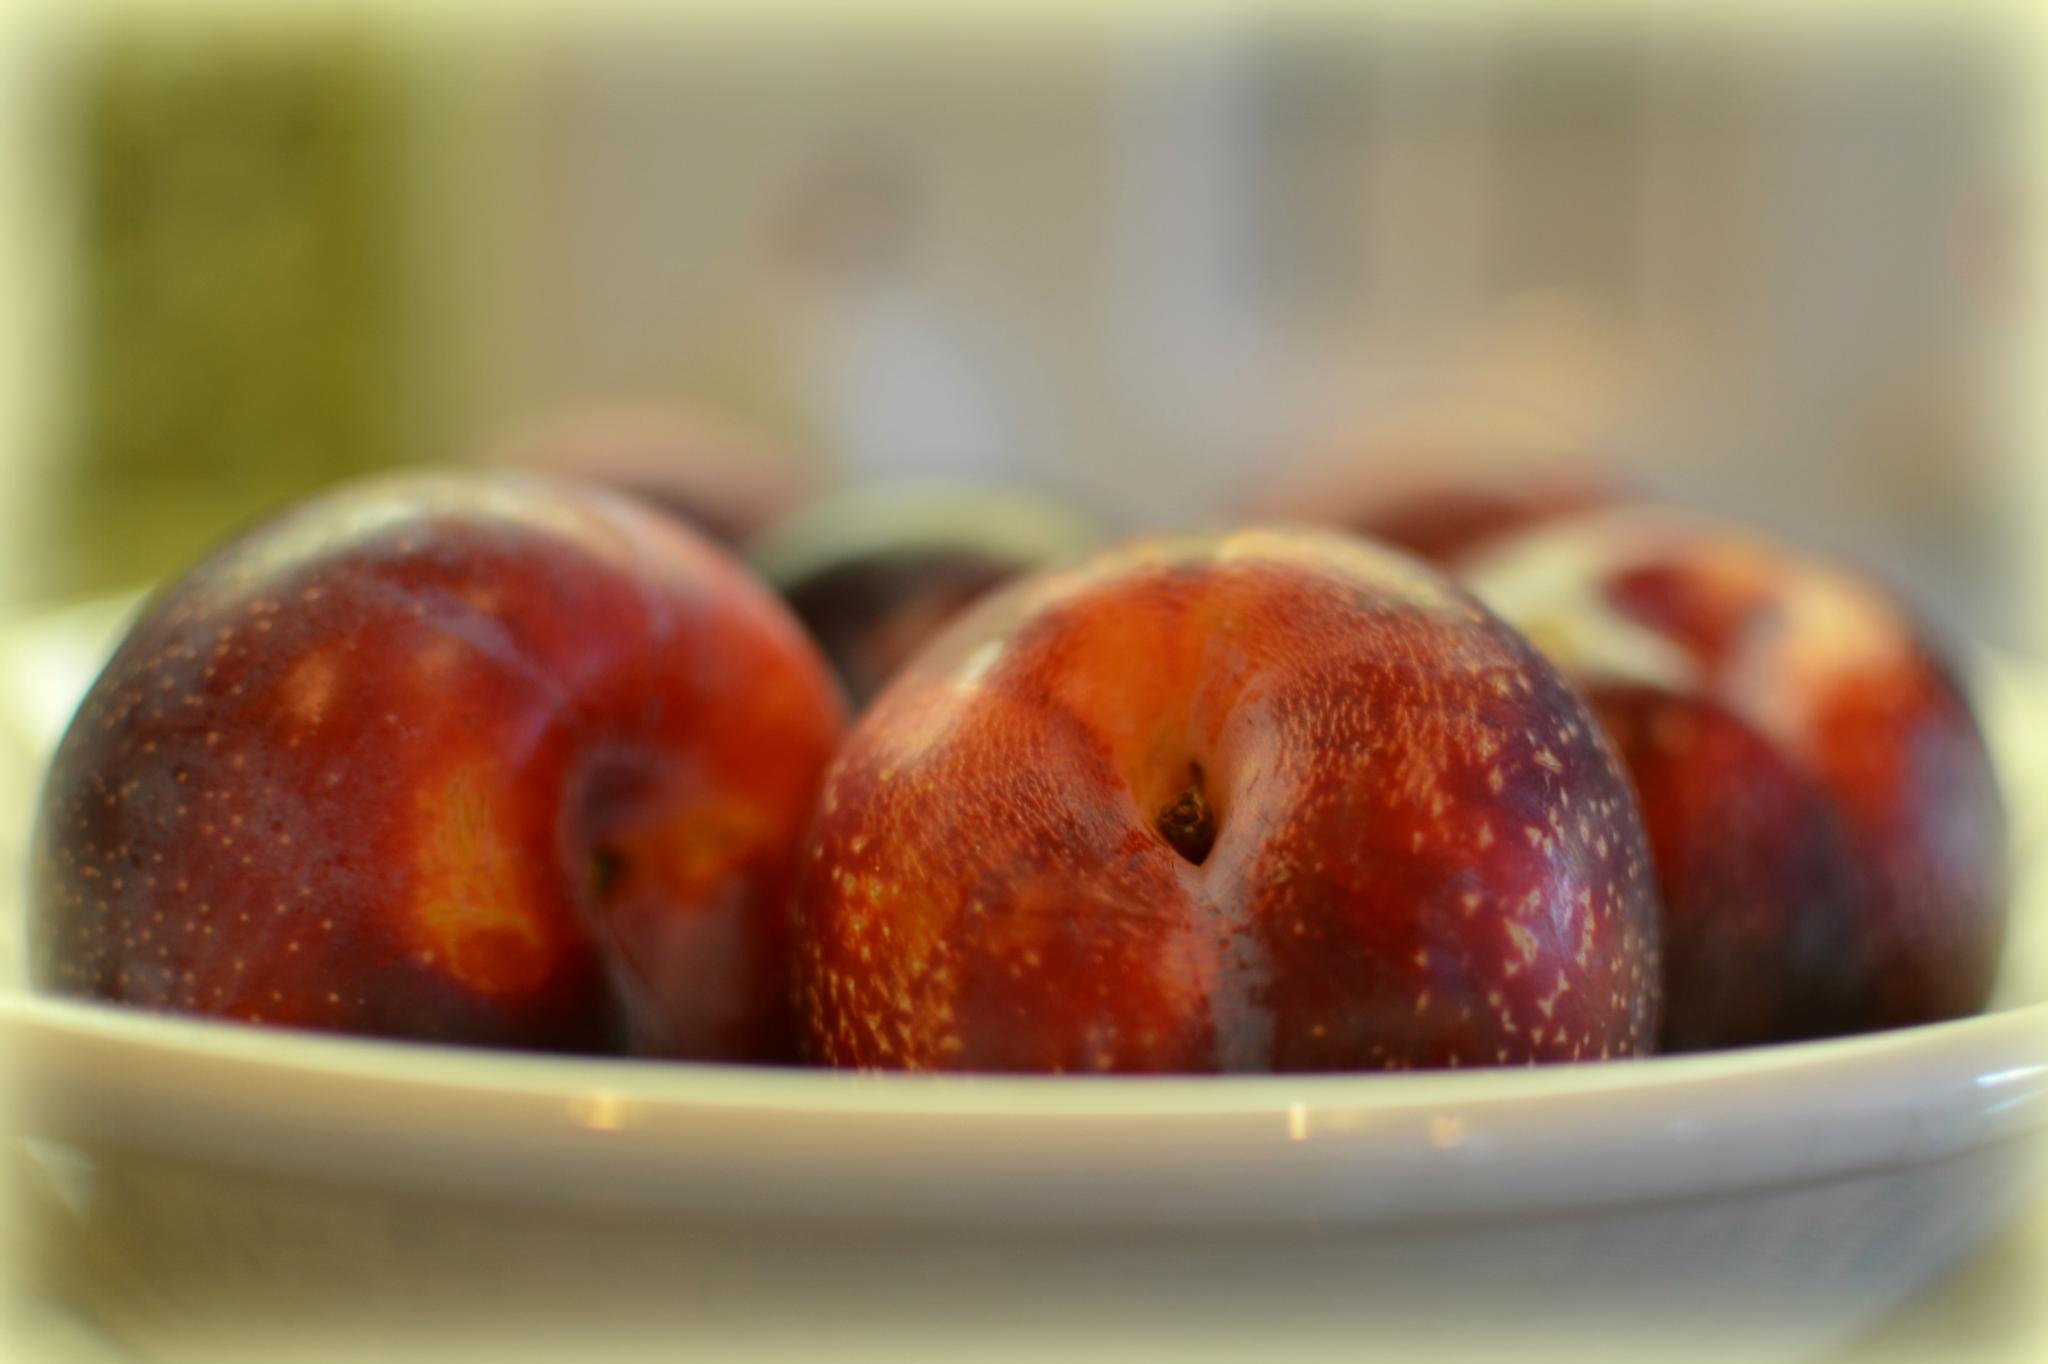 Plums by themeadway